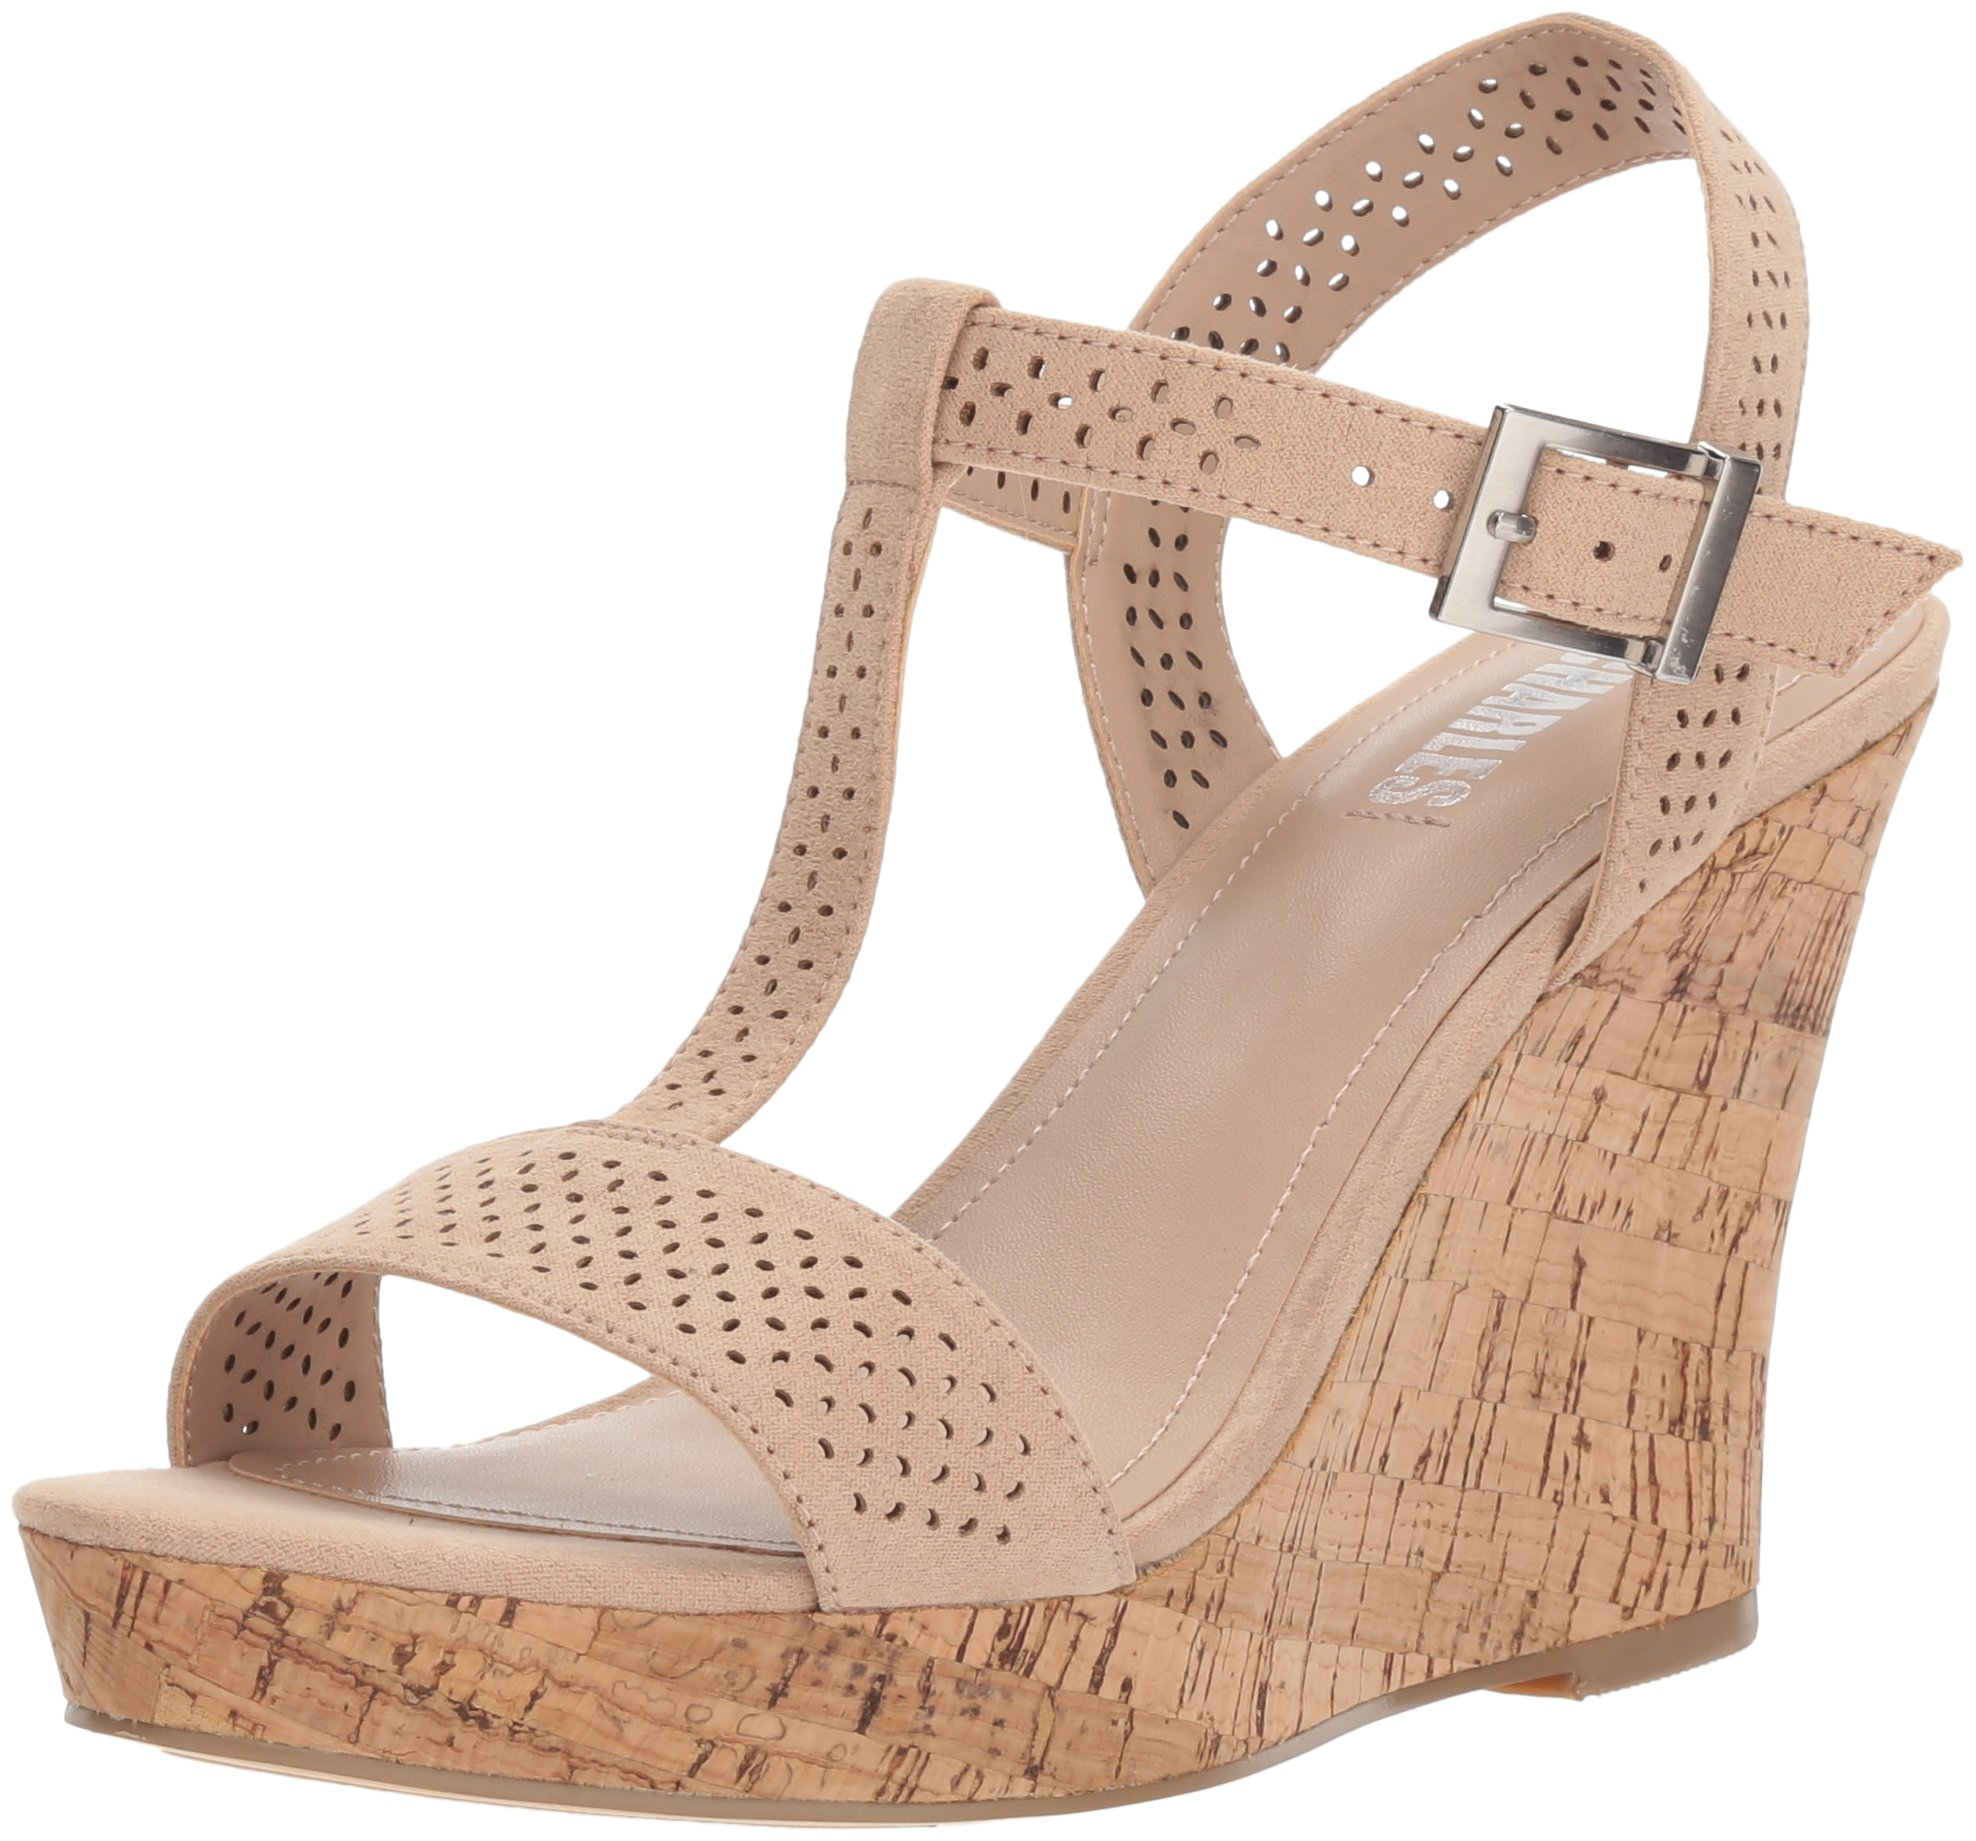 Style by Charles David Women's Link Wedge Sandal, Nude, 10 M US